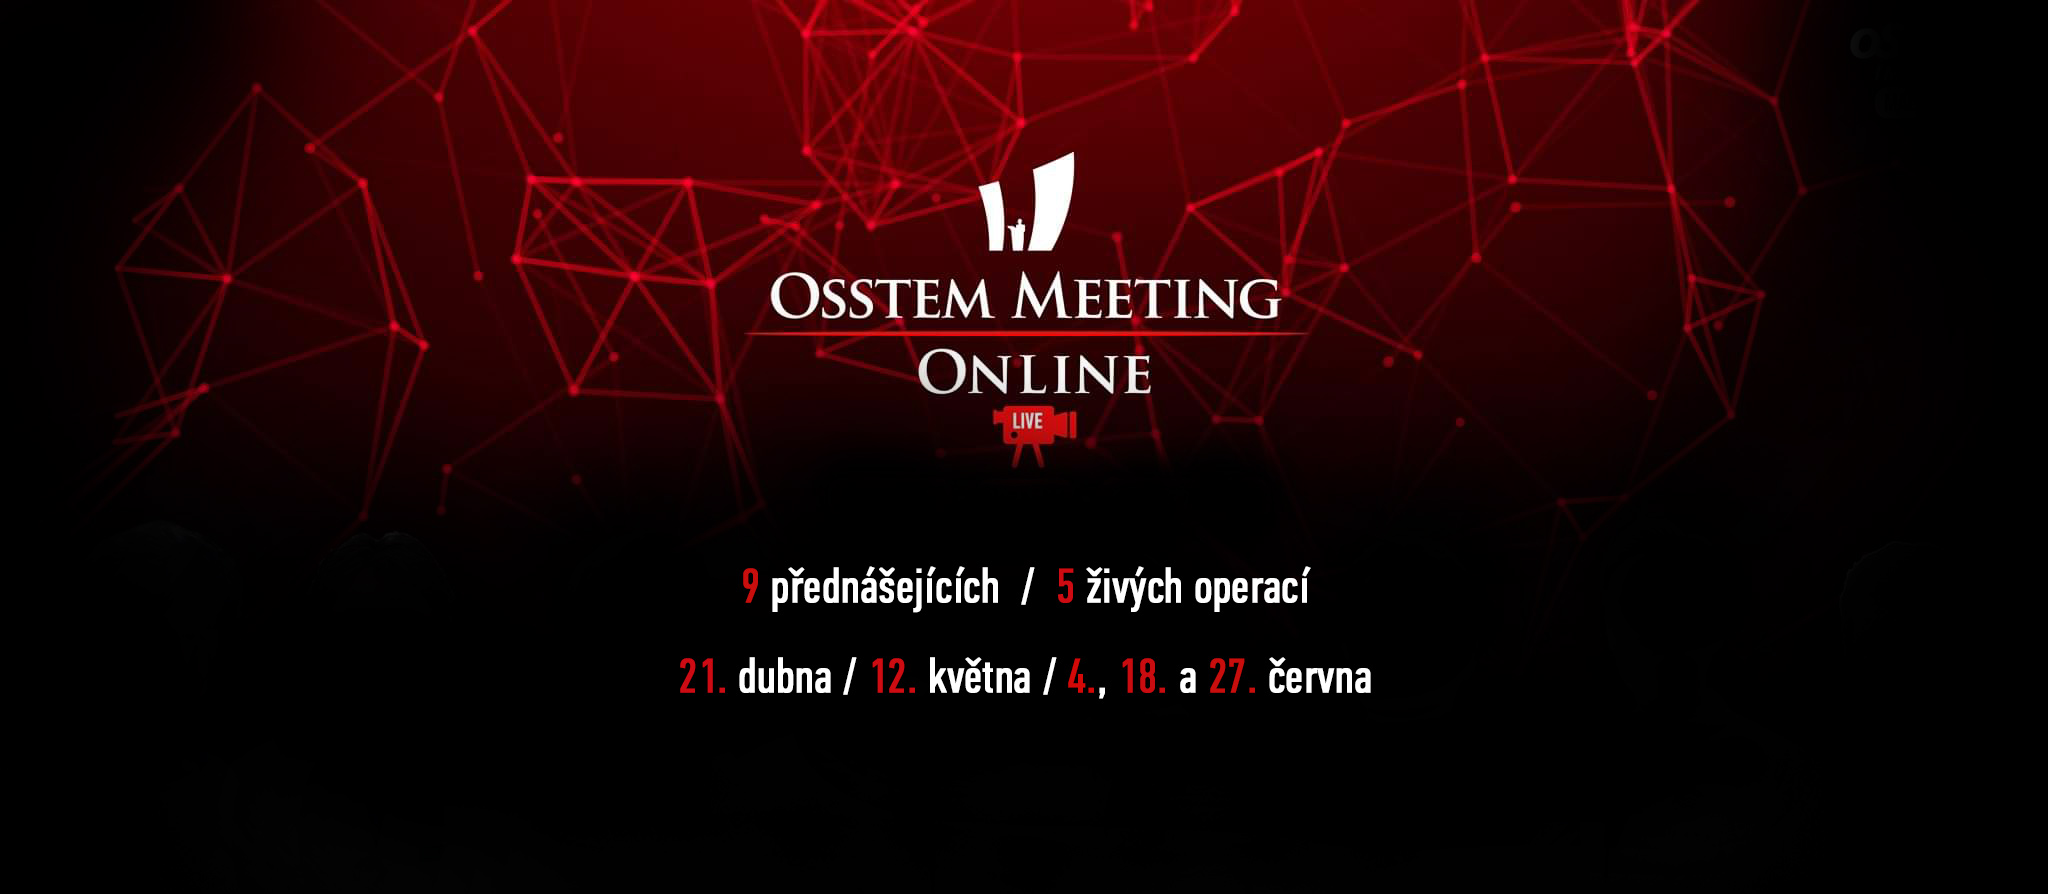 Osstem Online Meeting 2020